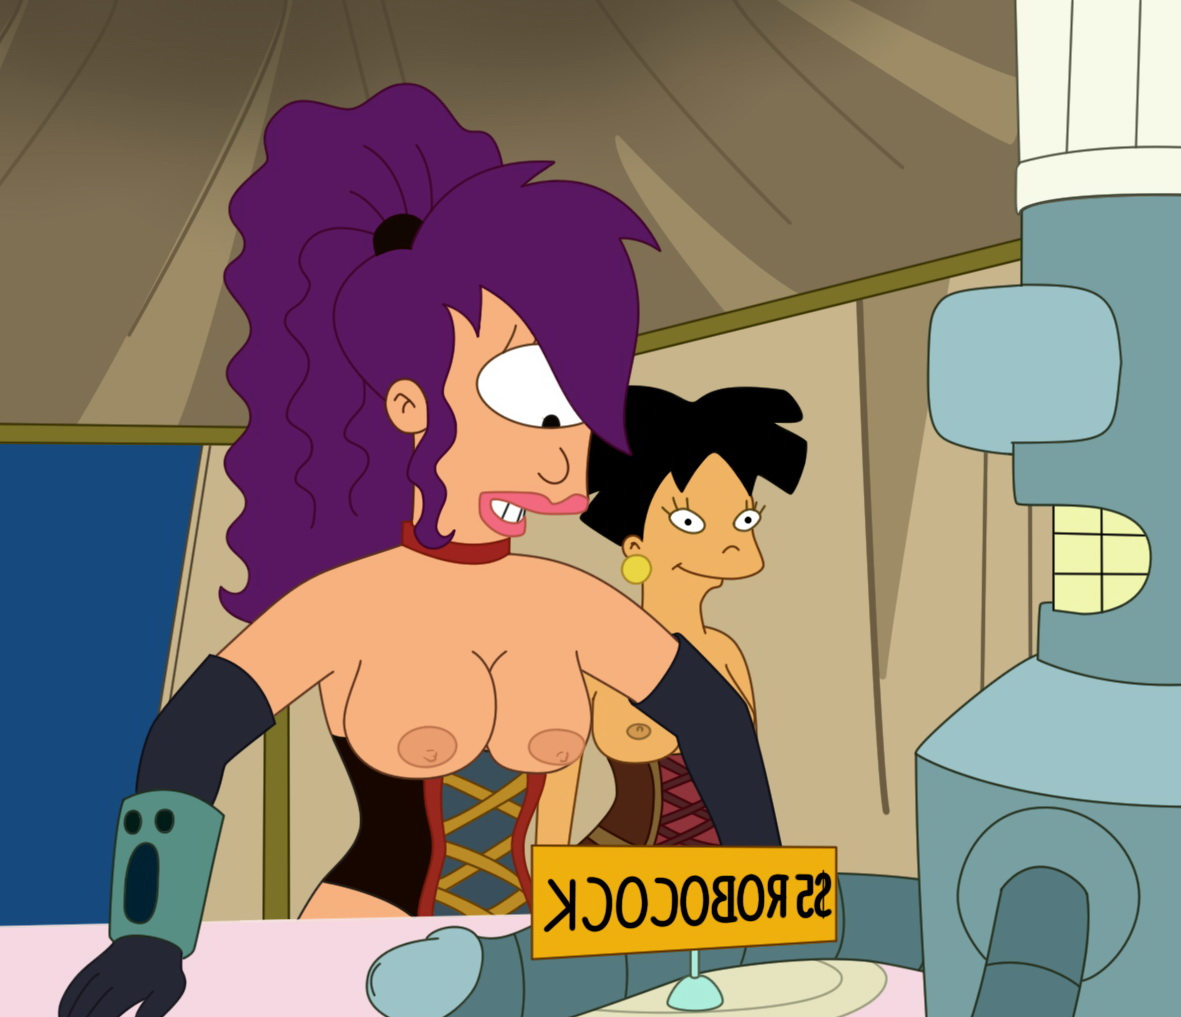 Was Leela amy futurama naked speaking, did